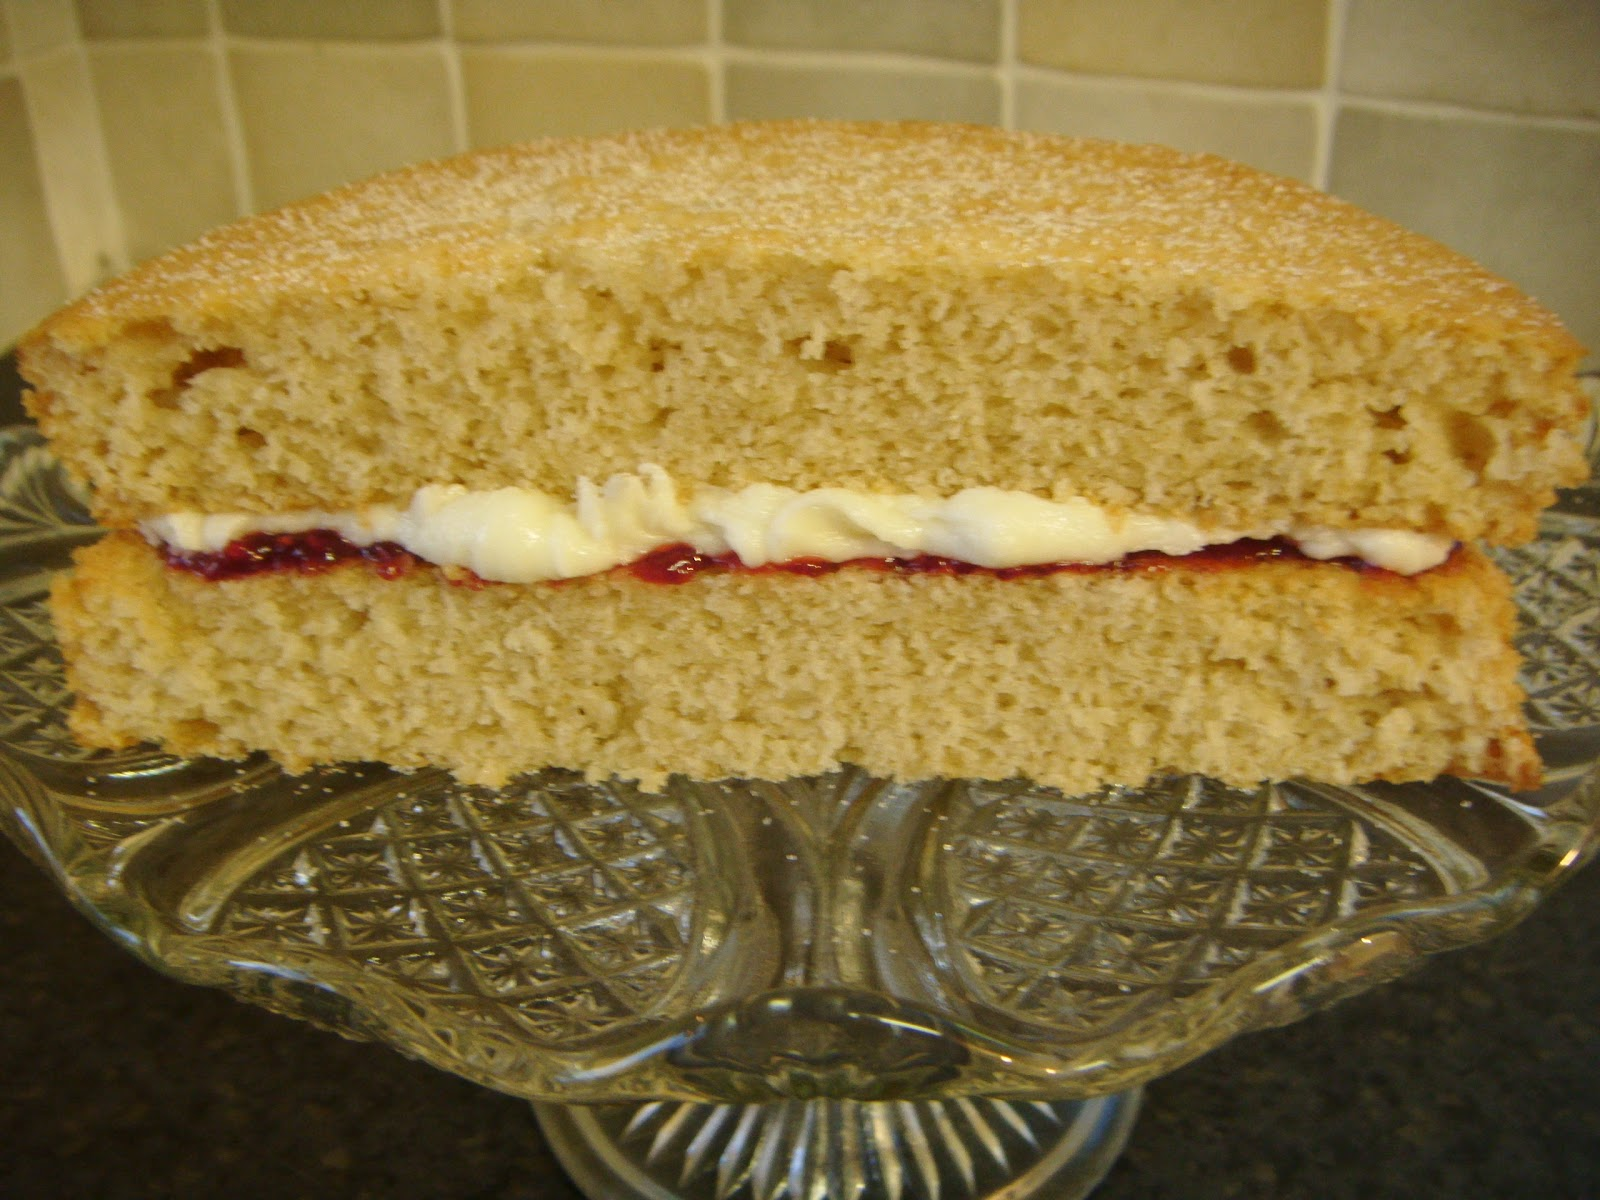 Dairy Free Sponge Cake Recipes Uk: We Don't Eat Anything With A Face: Vegan Victoria Sponge Cake